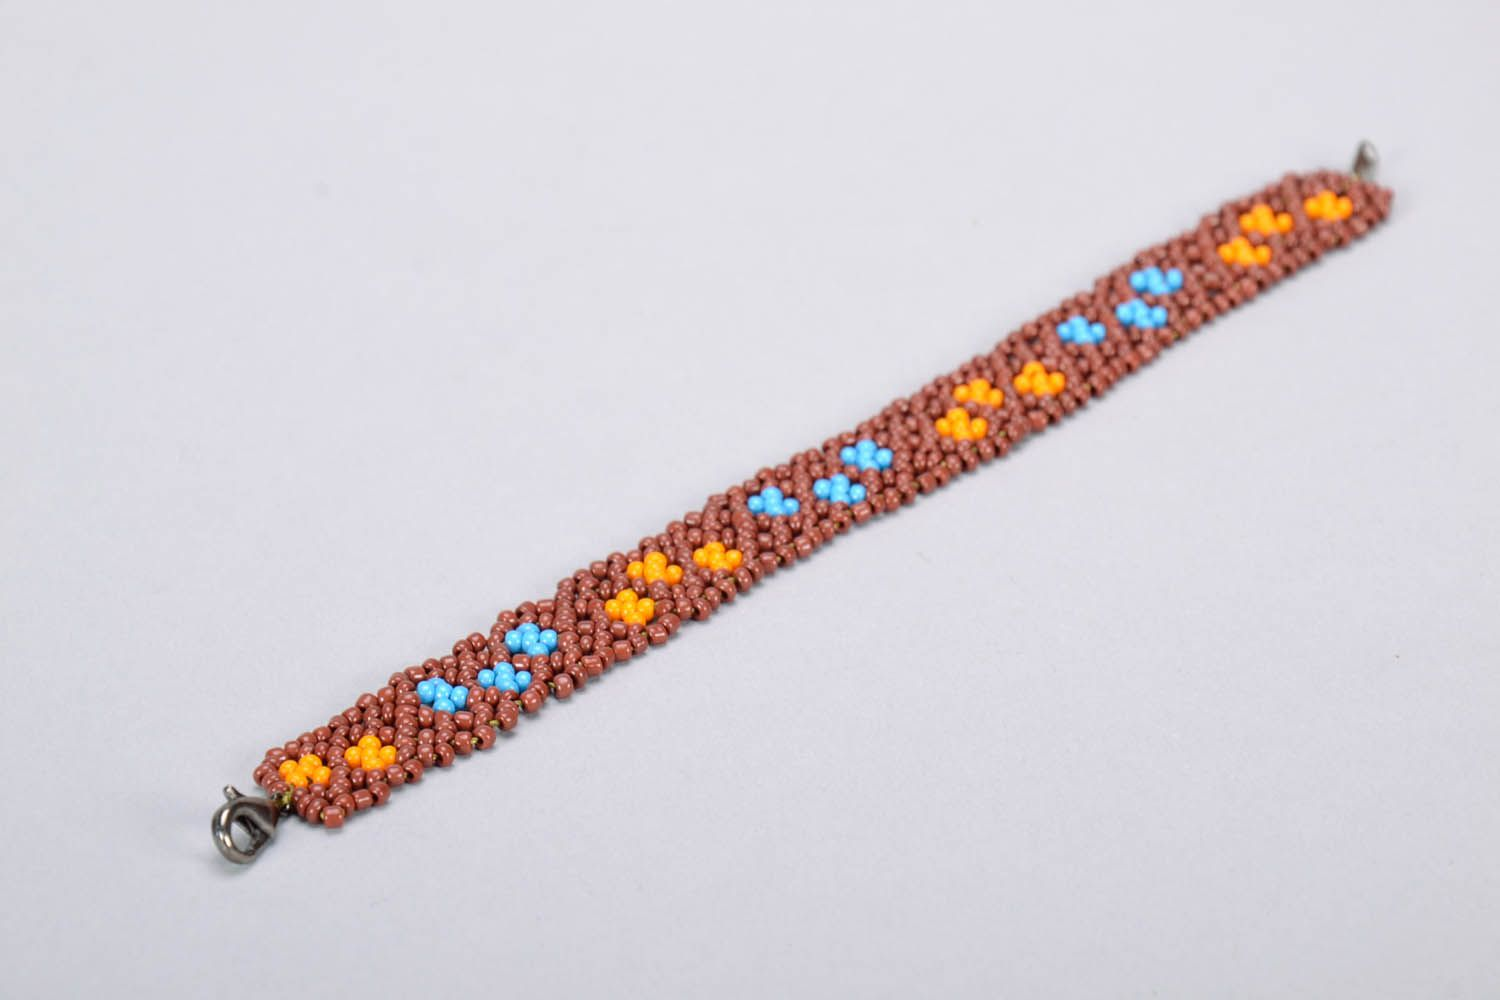 Woven beaded bracelet photo 4